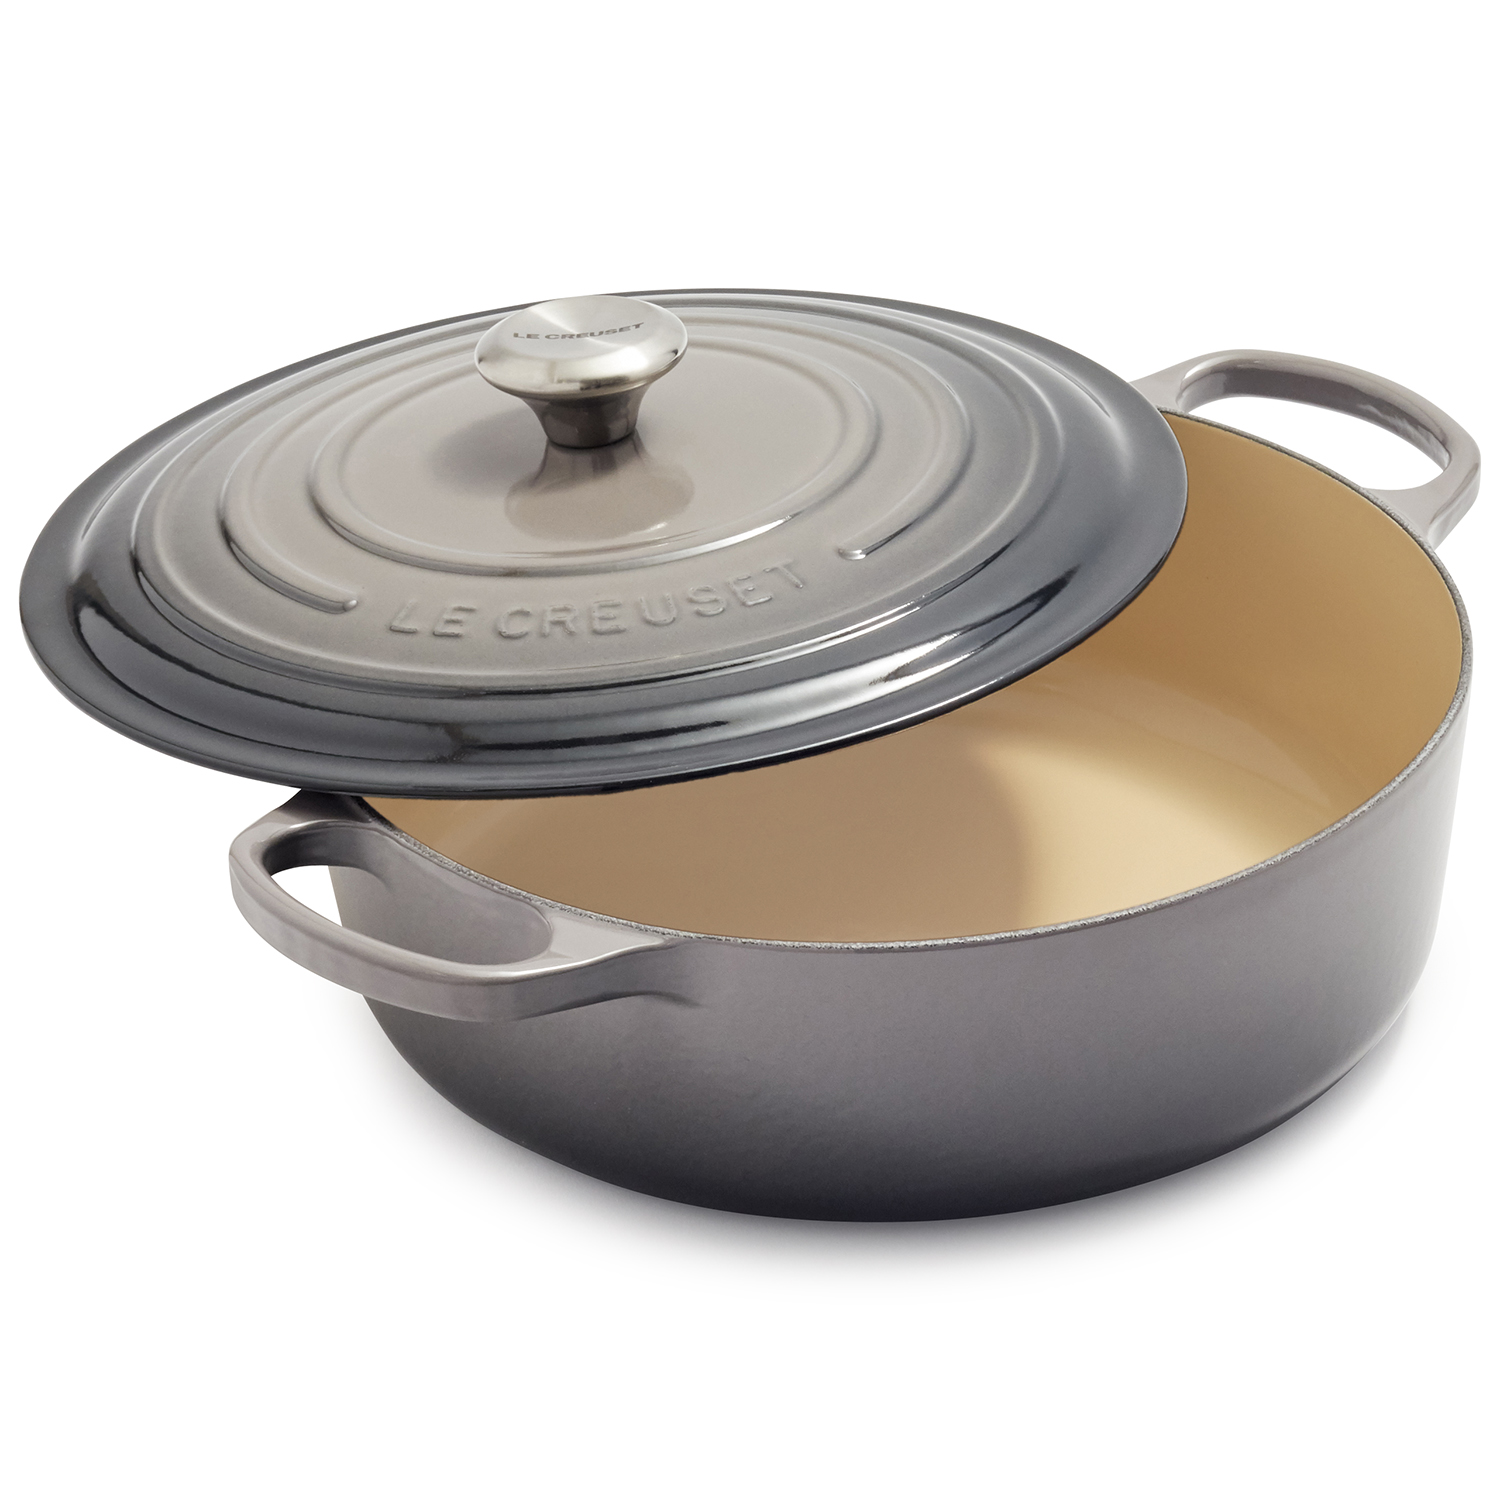 Le Creuset wide Dutch oven